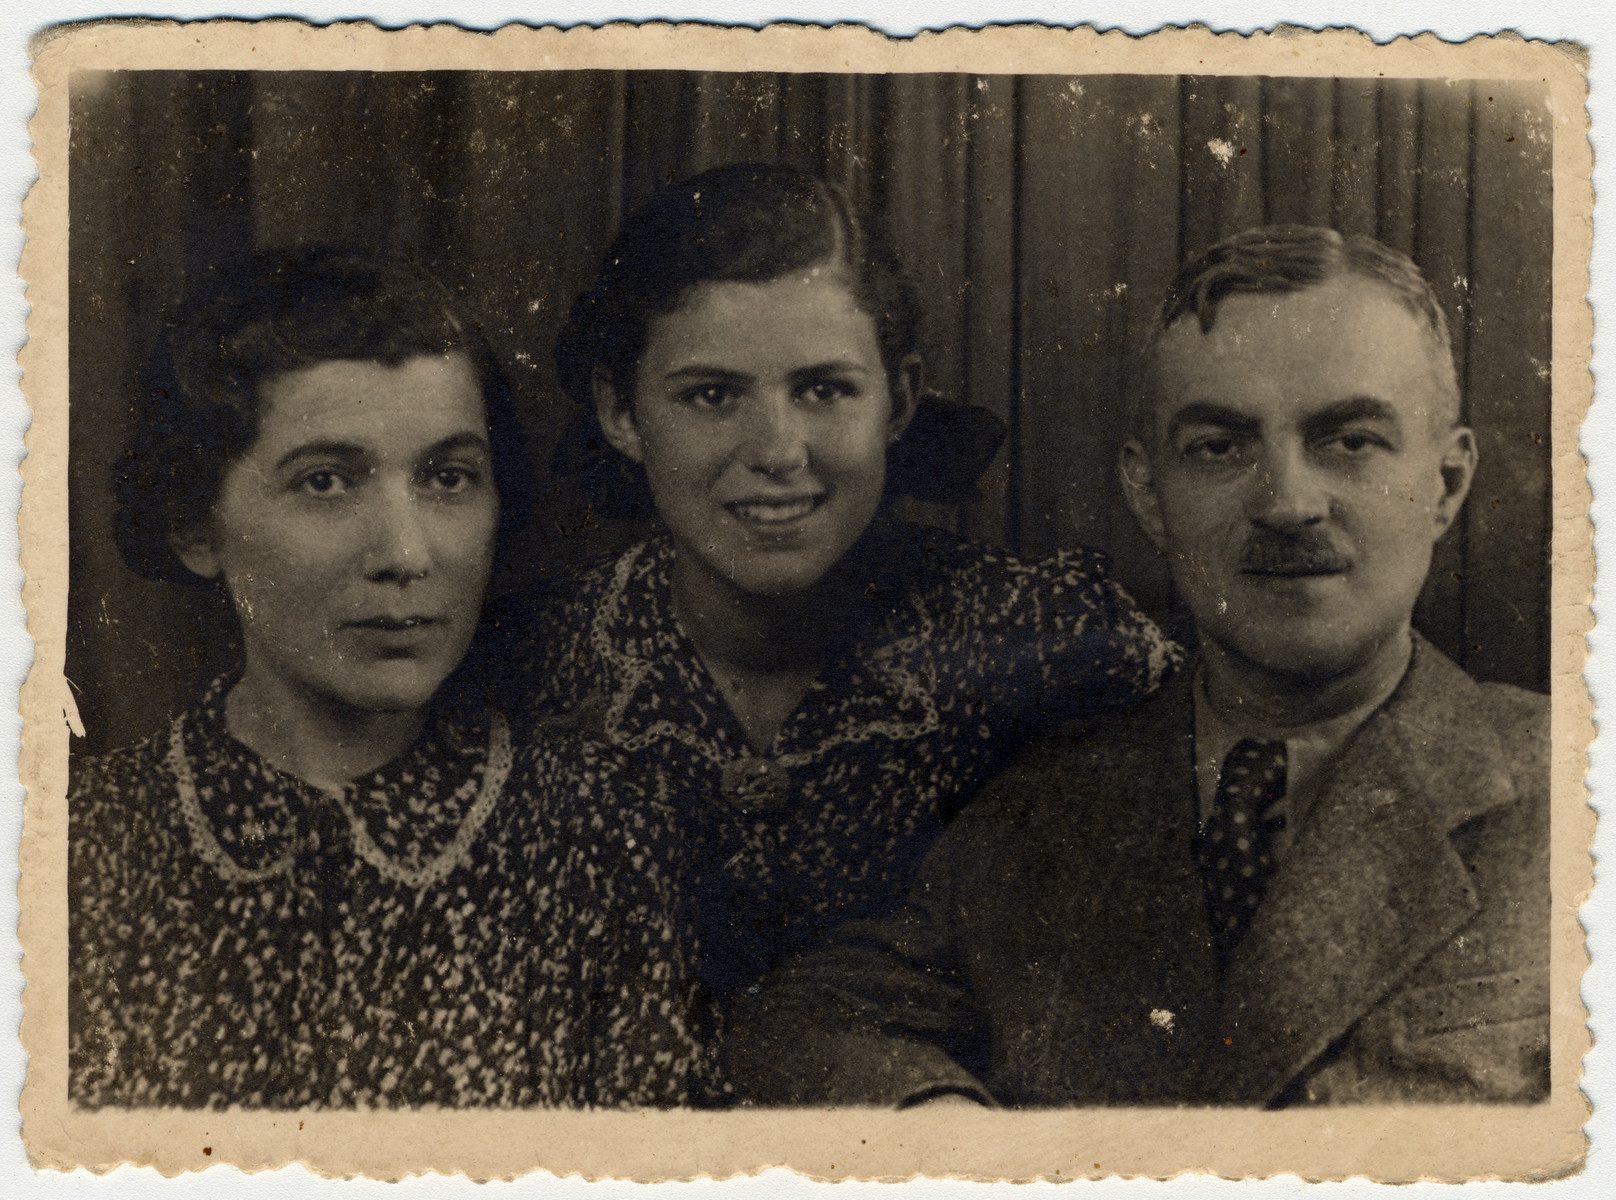 Close-up portrait of a Polish Jewish family in the Lodz ghetto.  Pictured are Dora, Inka and Gustaw Gerson.